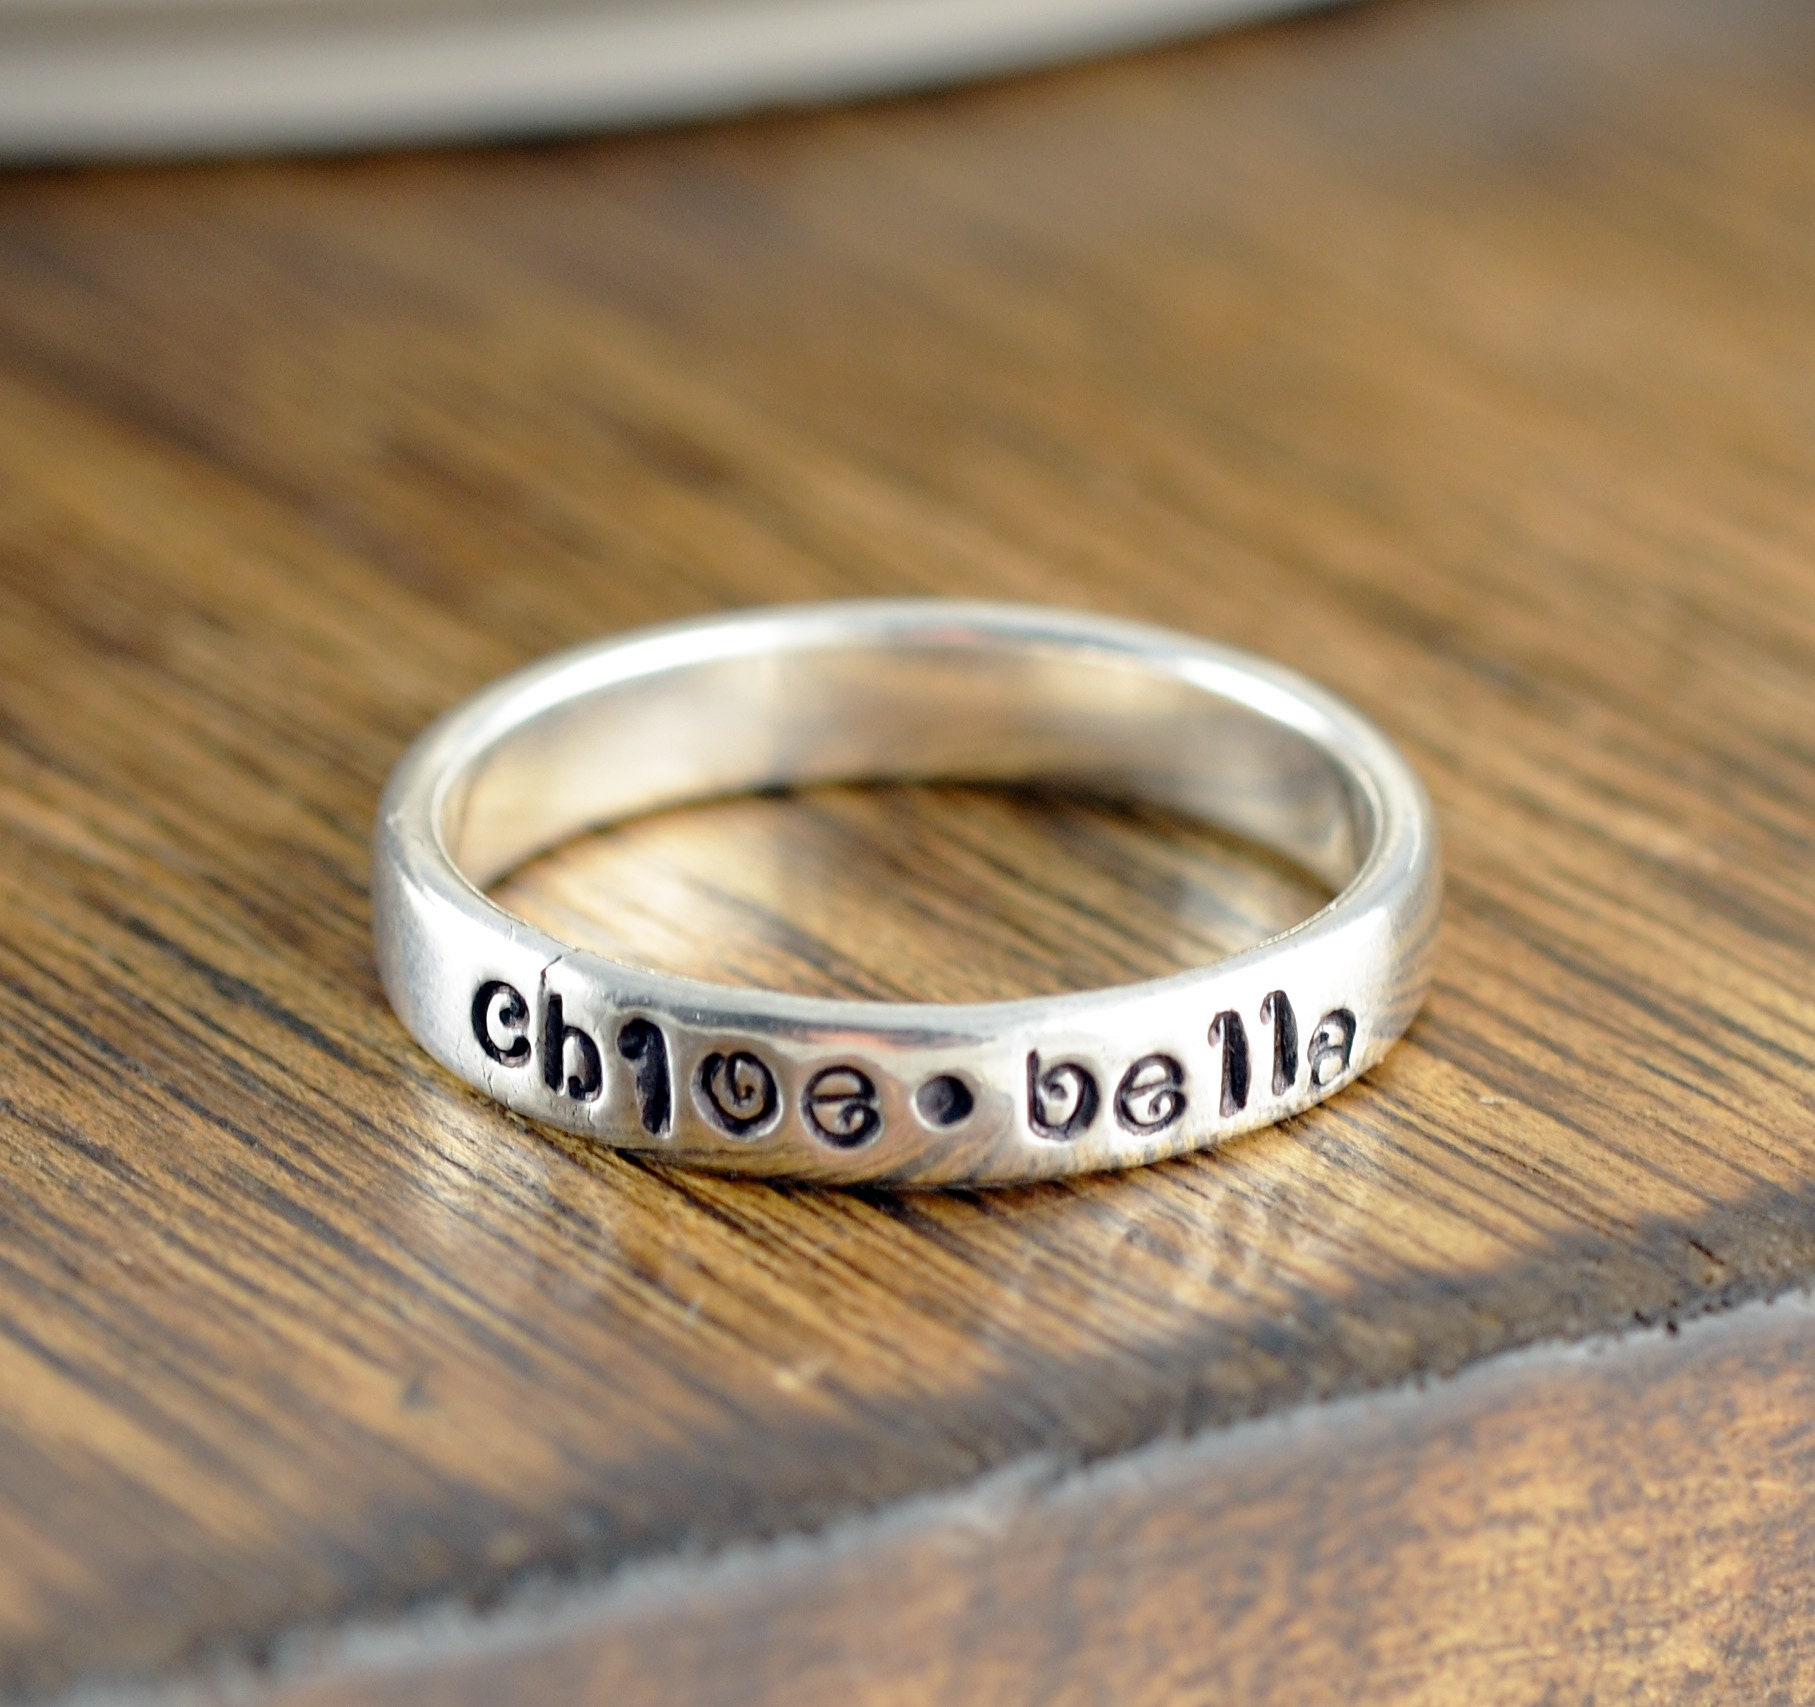 United Sterling Silver Ring Size 4 Engraved. Fine Rings